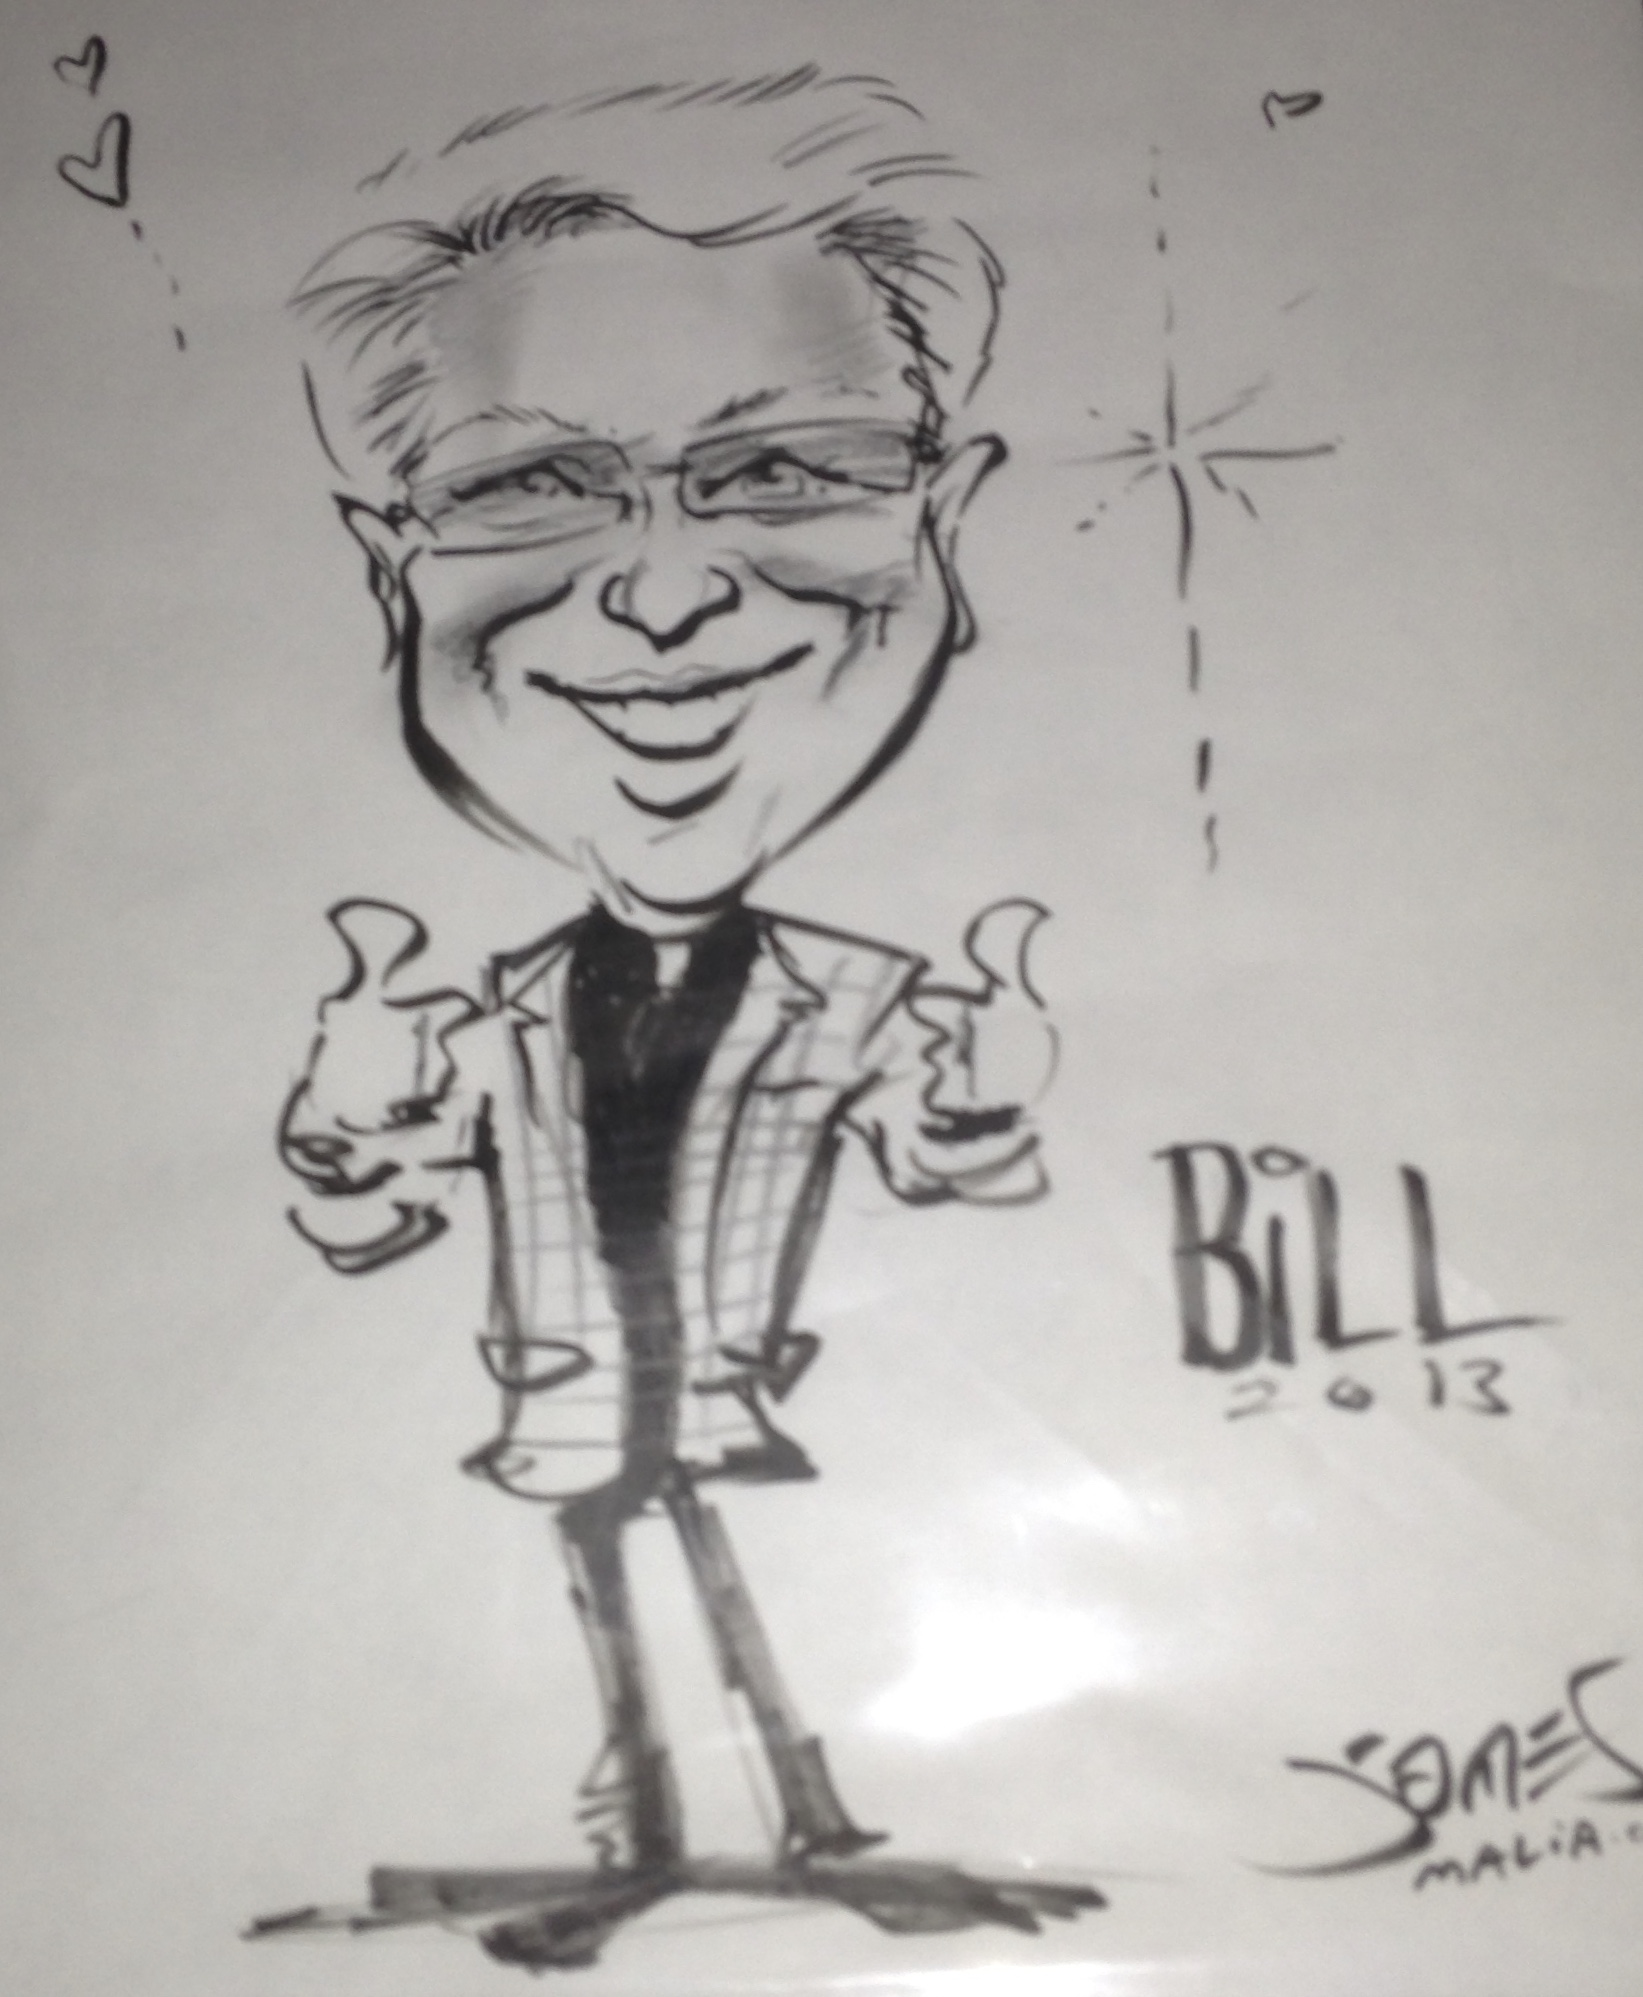 Bill drawing.jpg